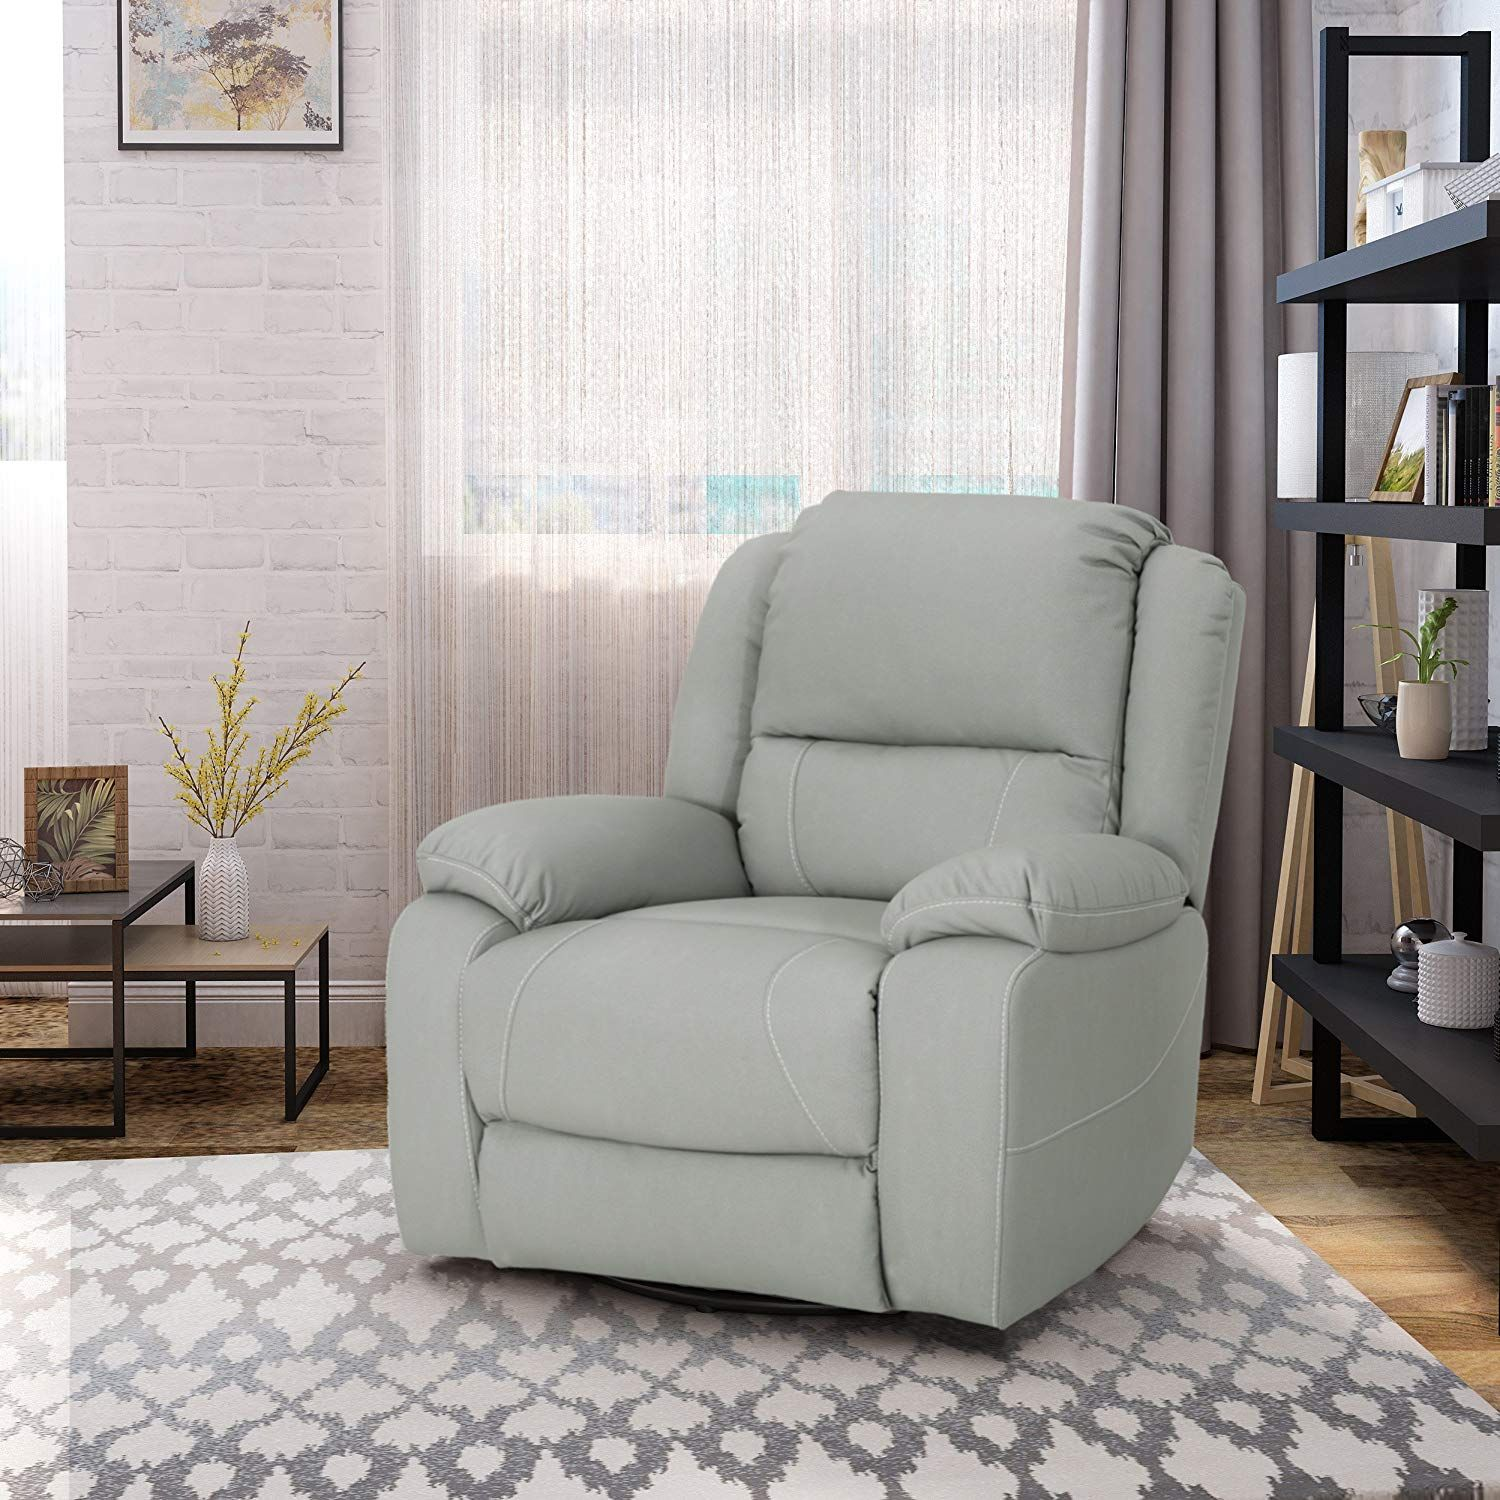 Teresa Classic Tufted Leather Swivel Recliner, Light Grey